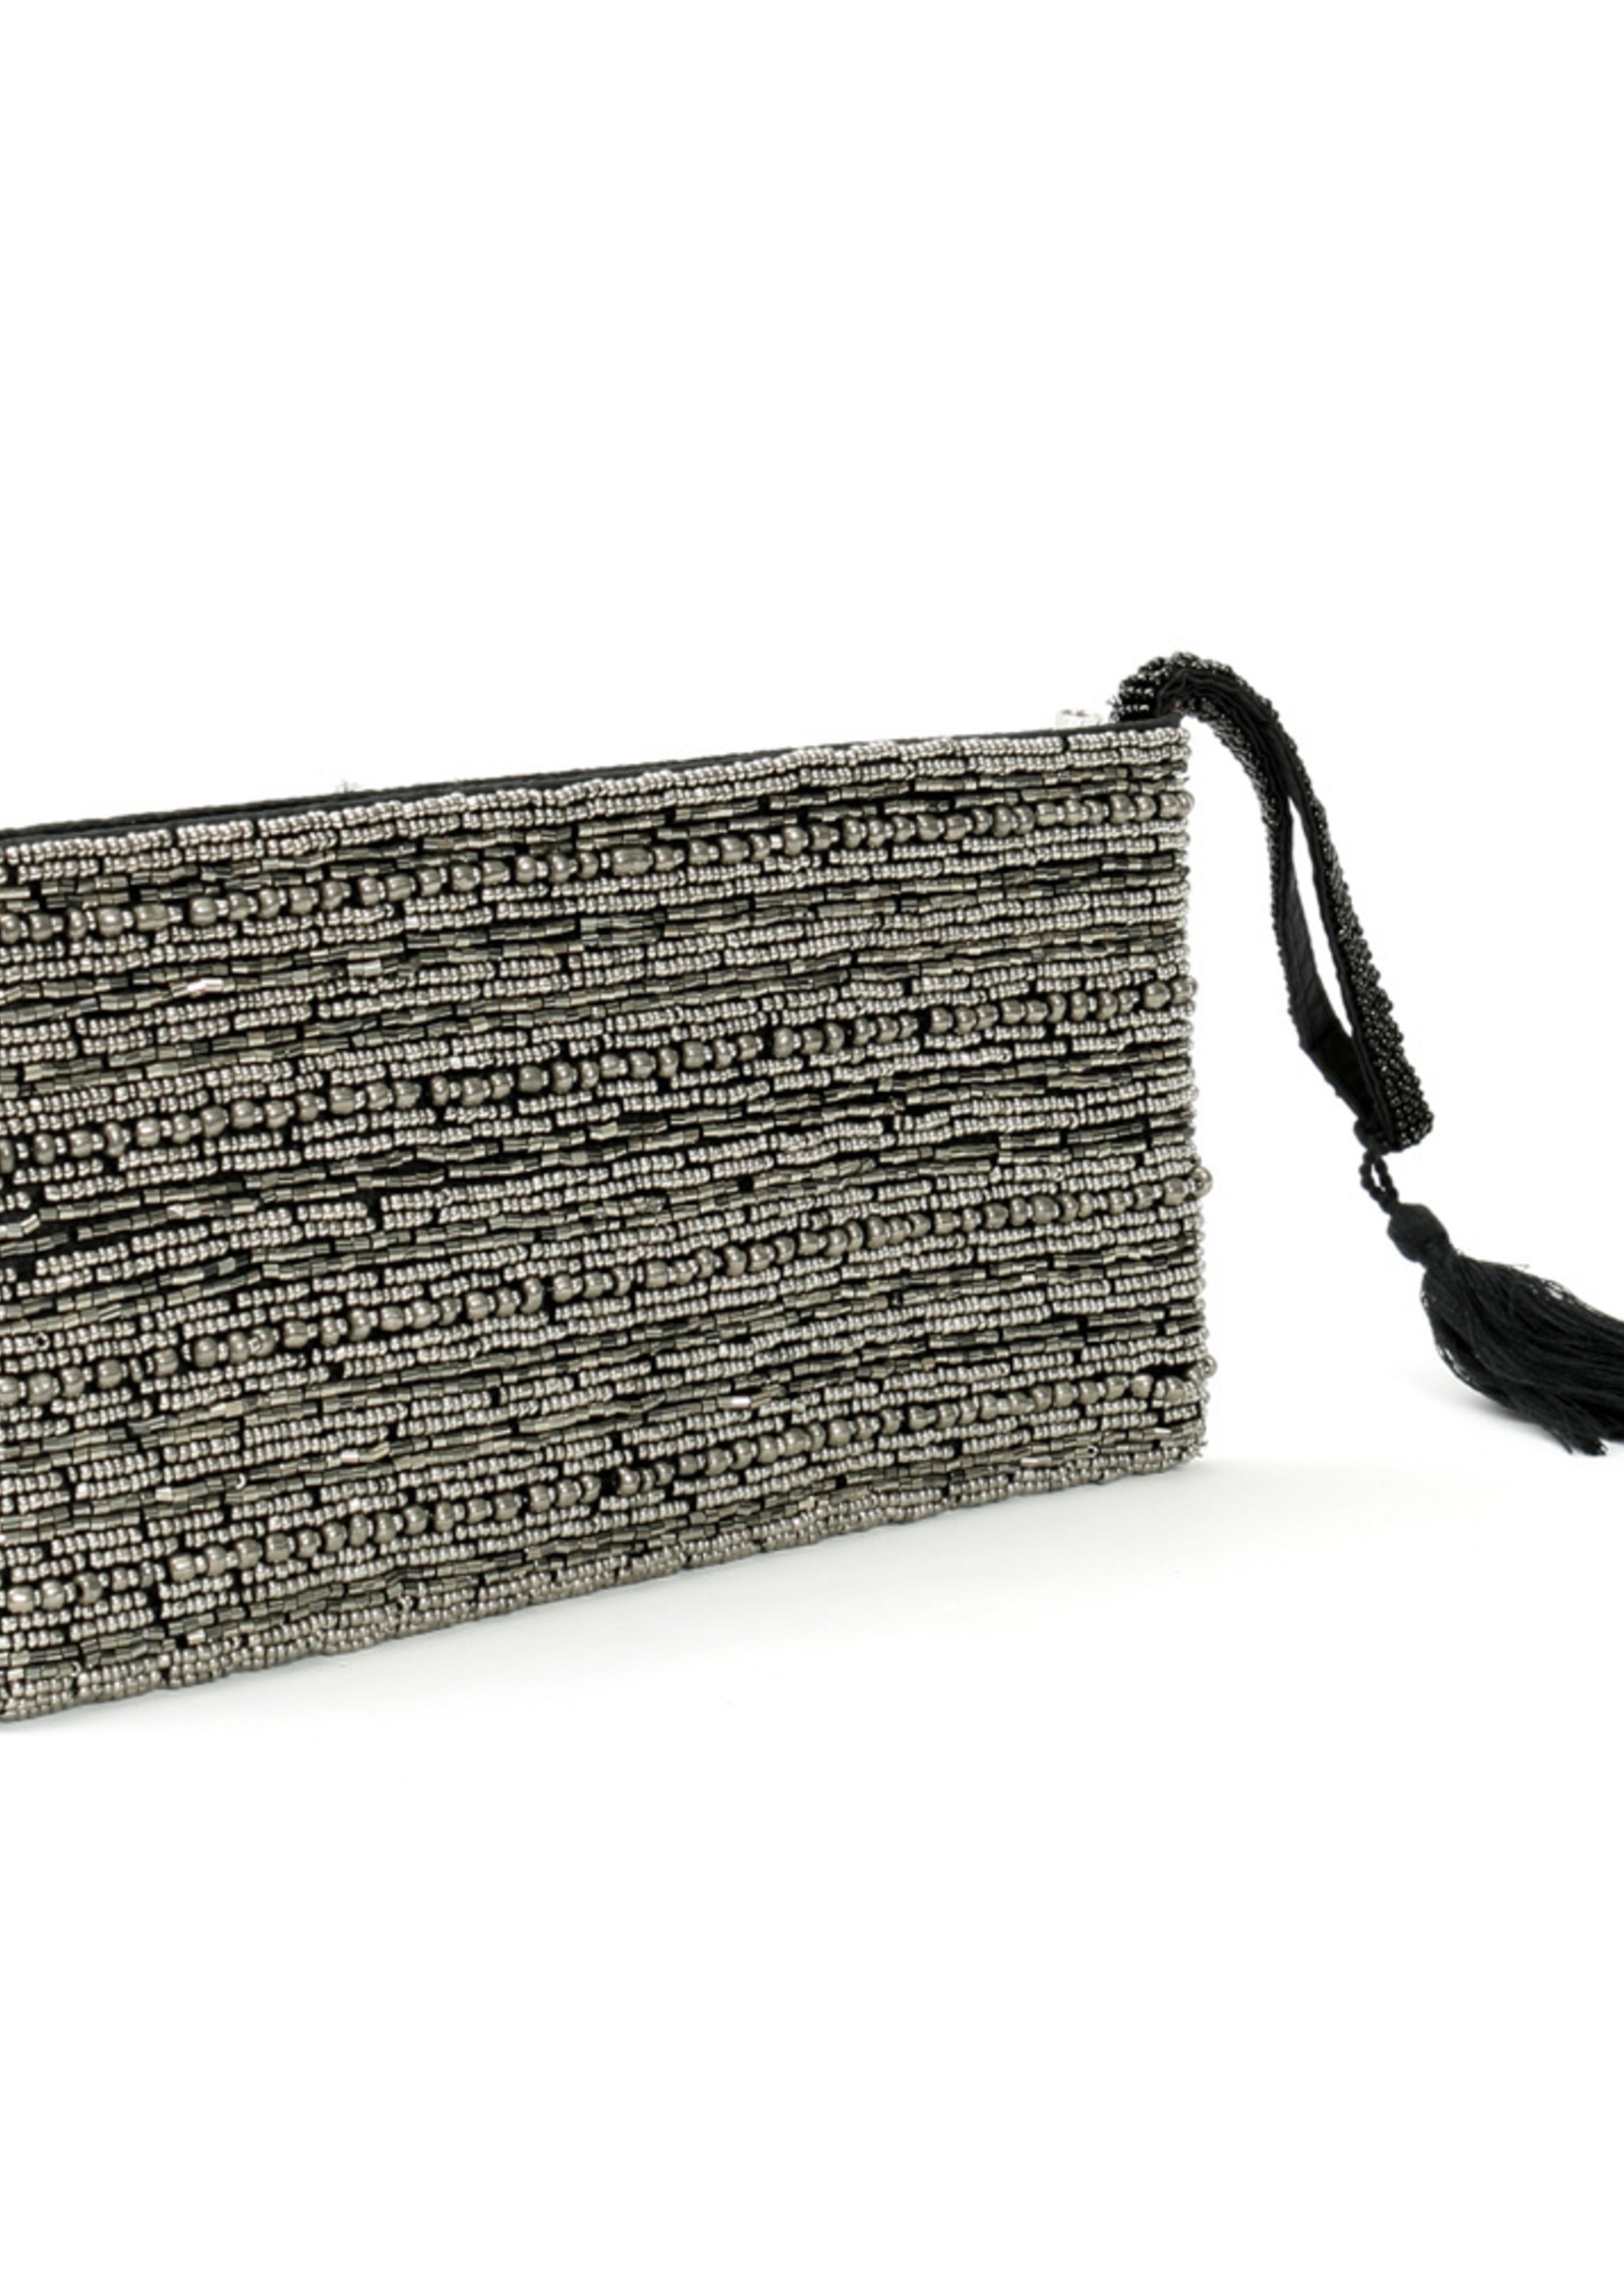 The Silver Clutch